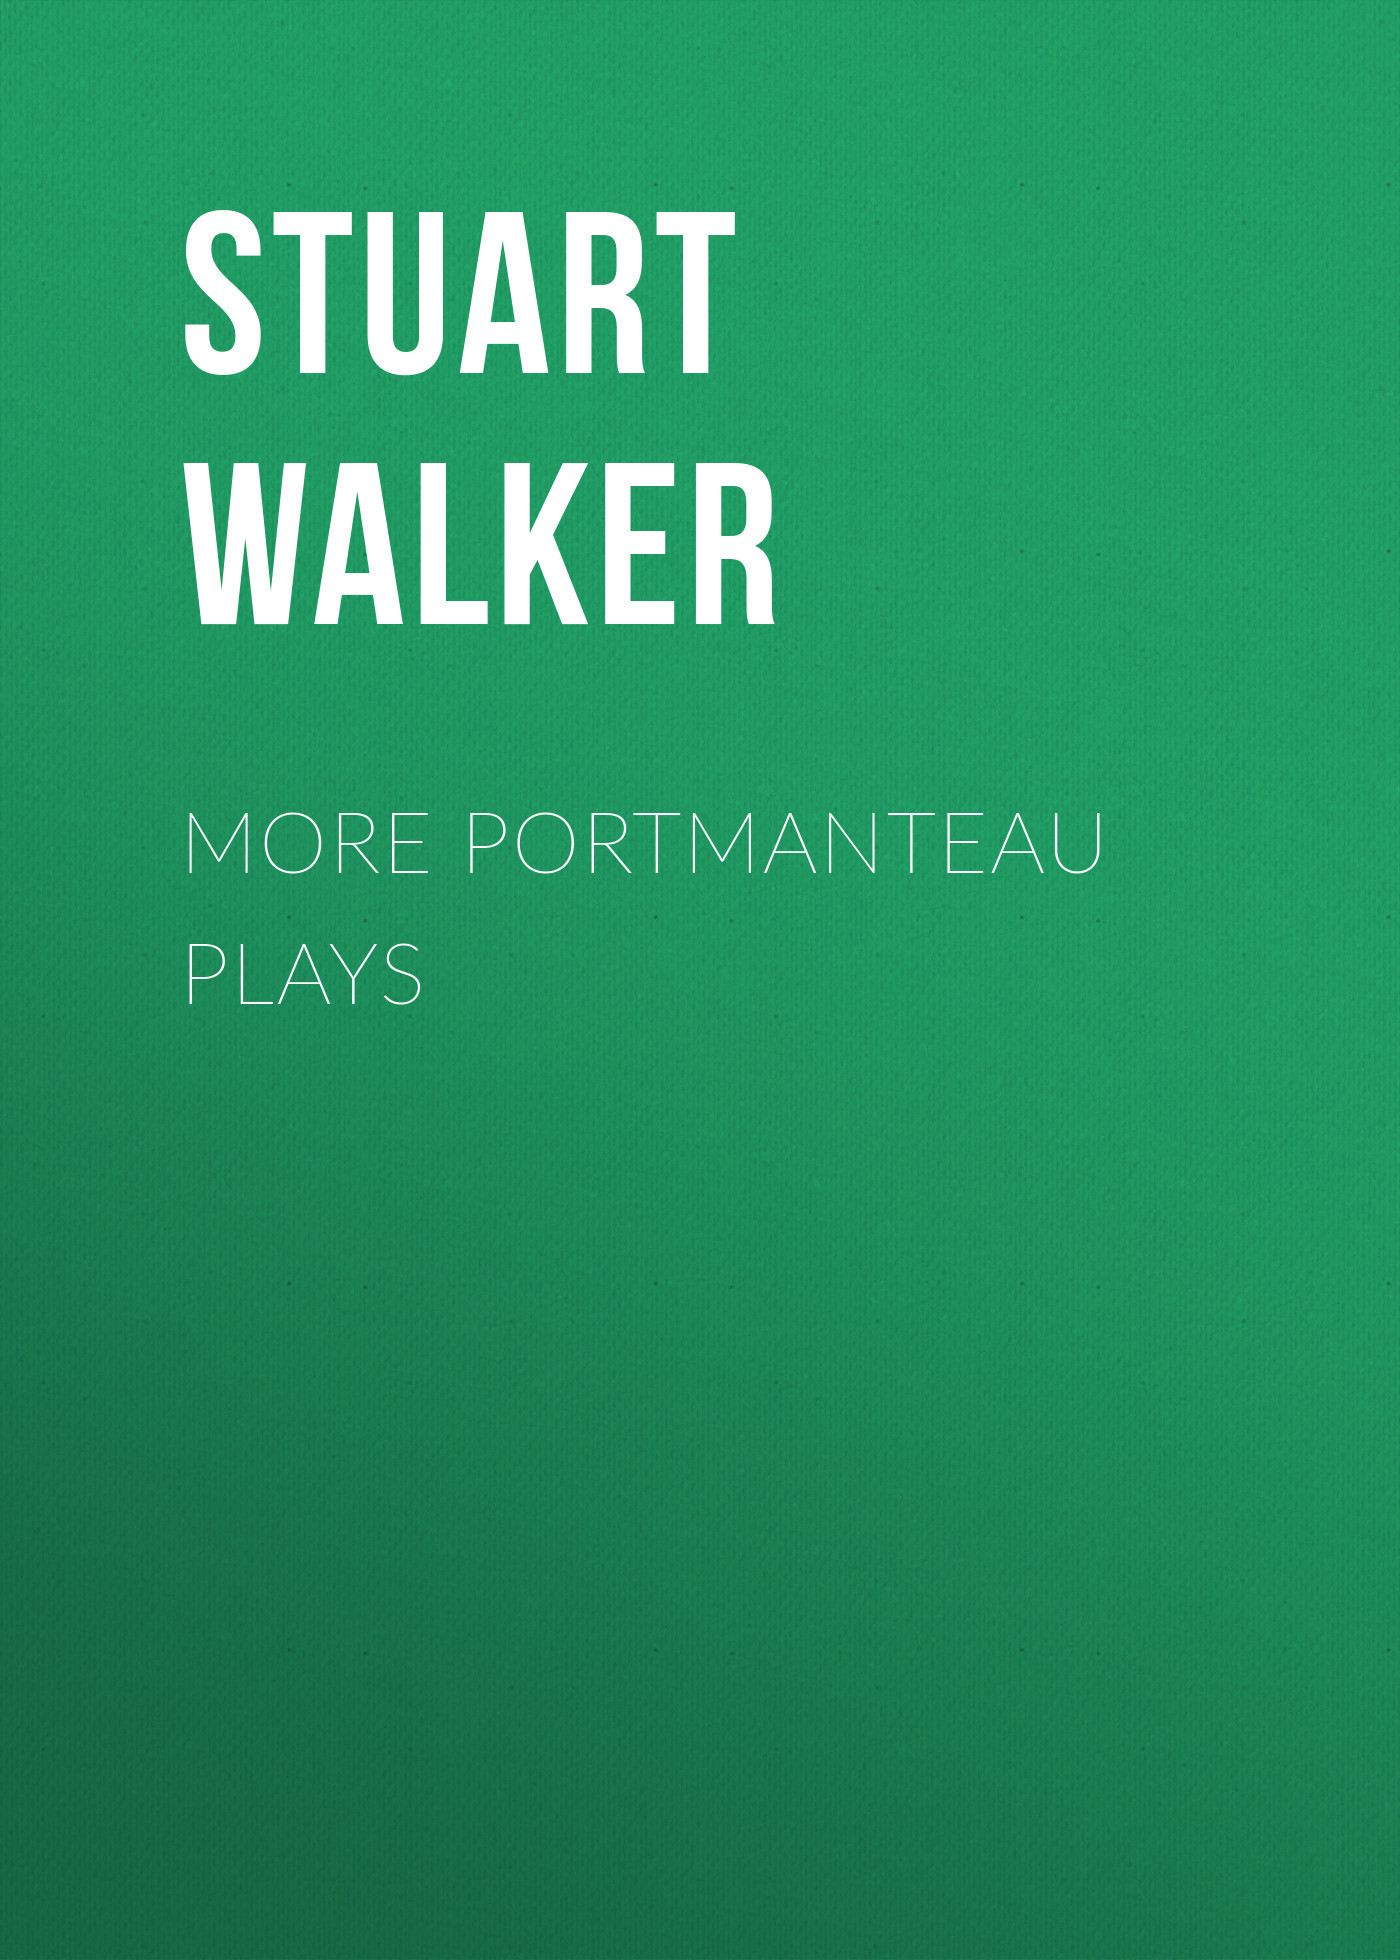 Stuart Walker More Portmanteau Plays inventive components of portmanteau words